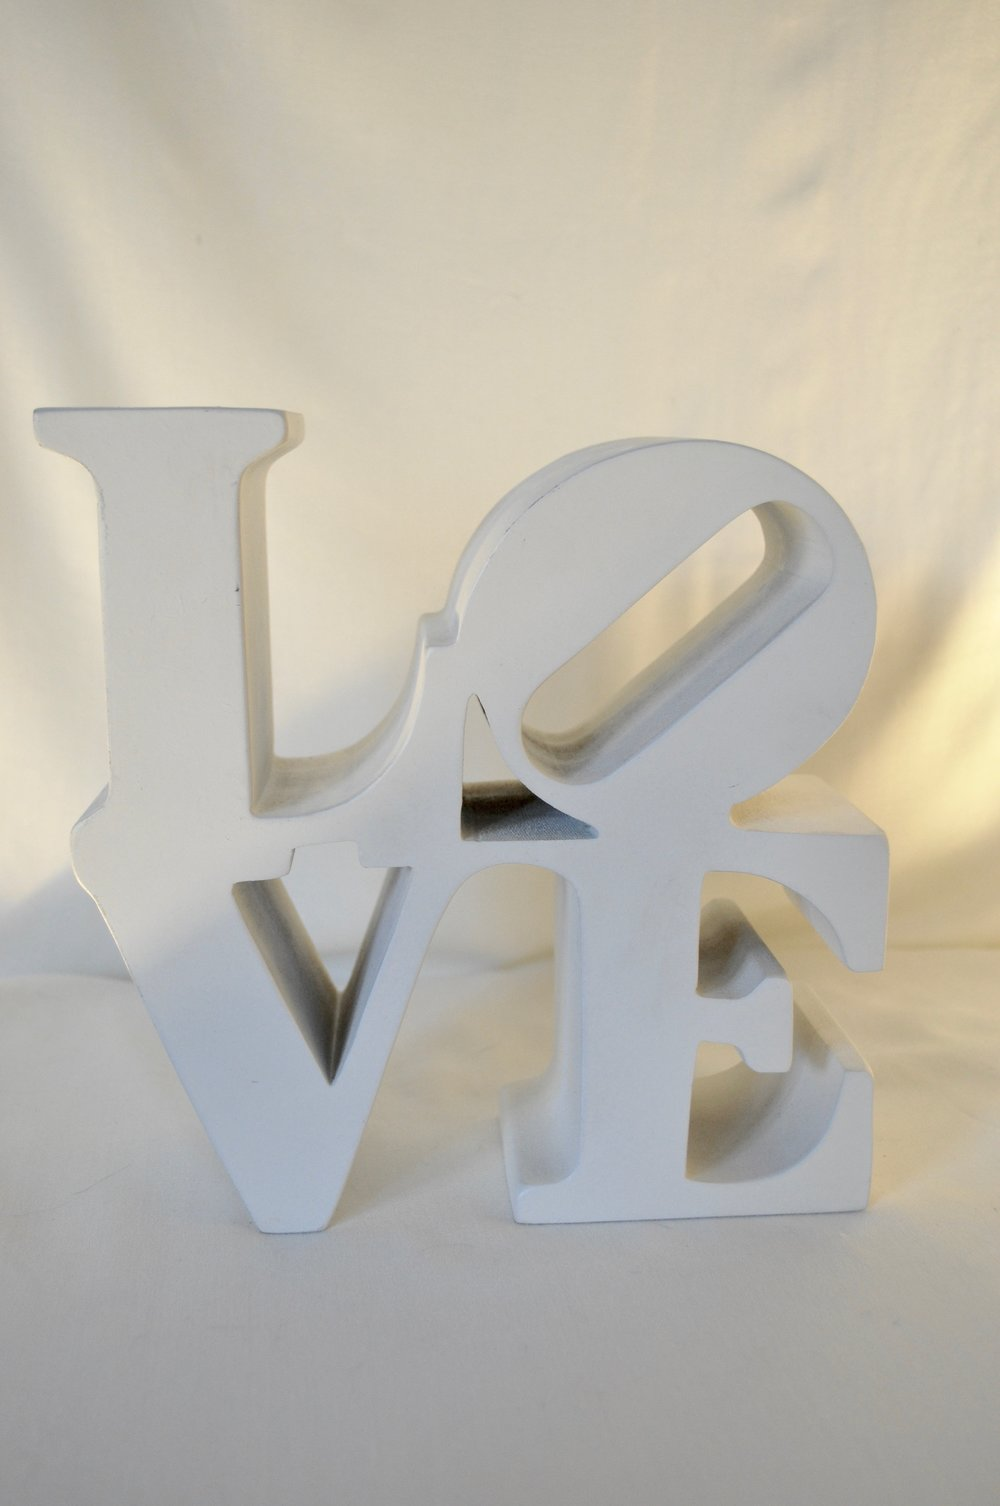 "LOVE Sculpture 8""x8"" - Qty: 1"